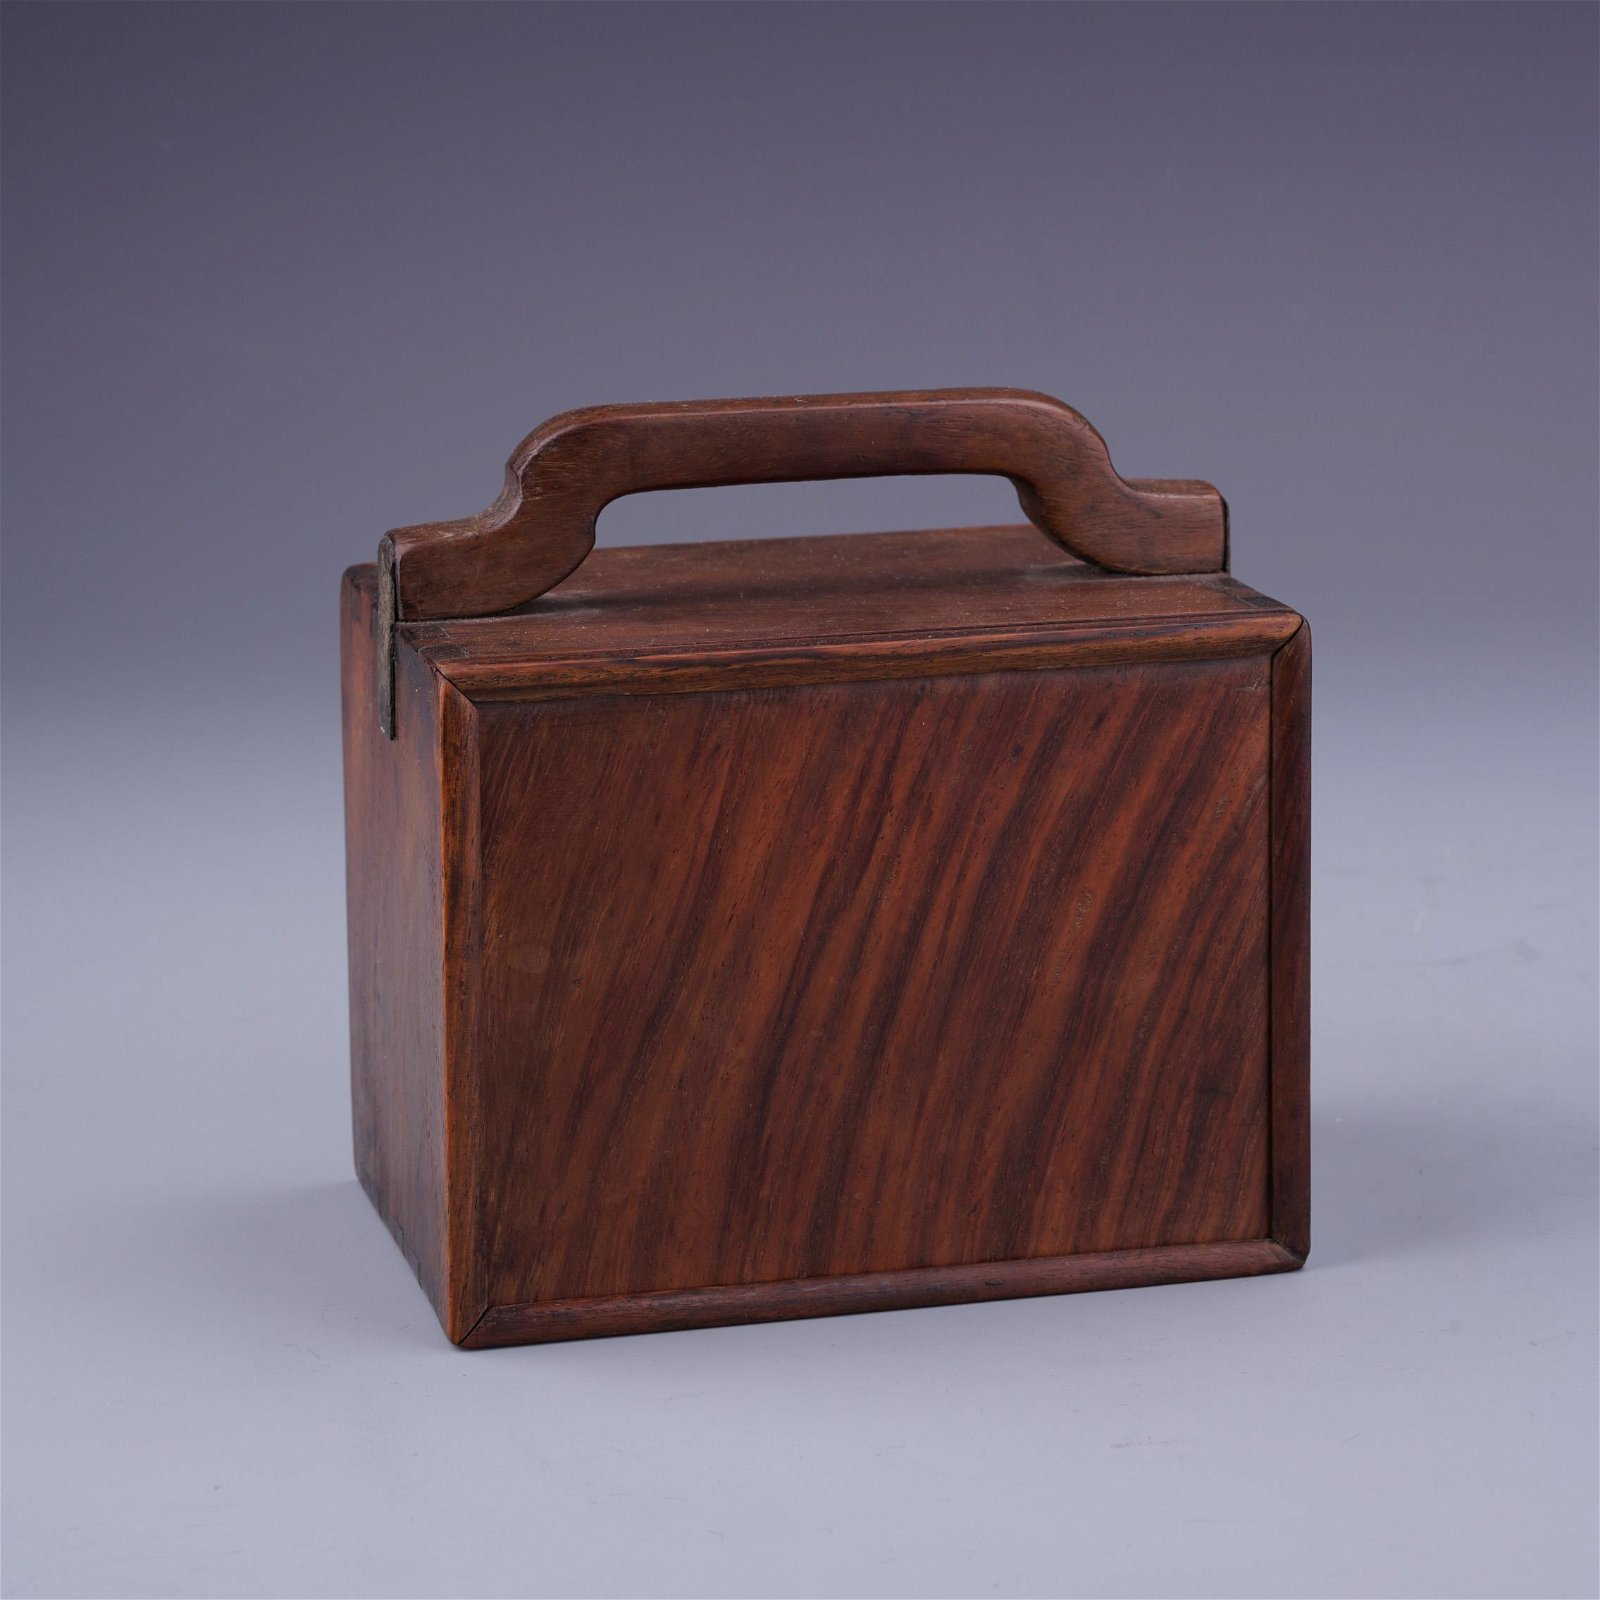 A Chinese Huanghuali Multistory Box with Handle